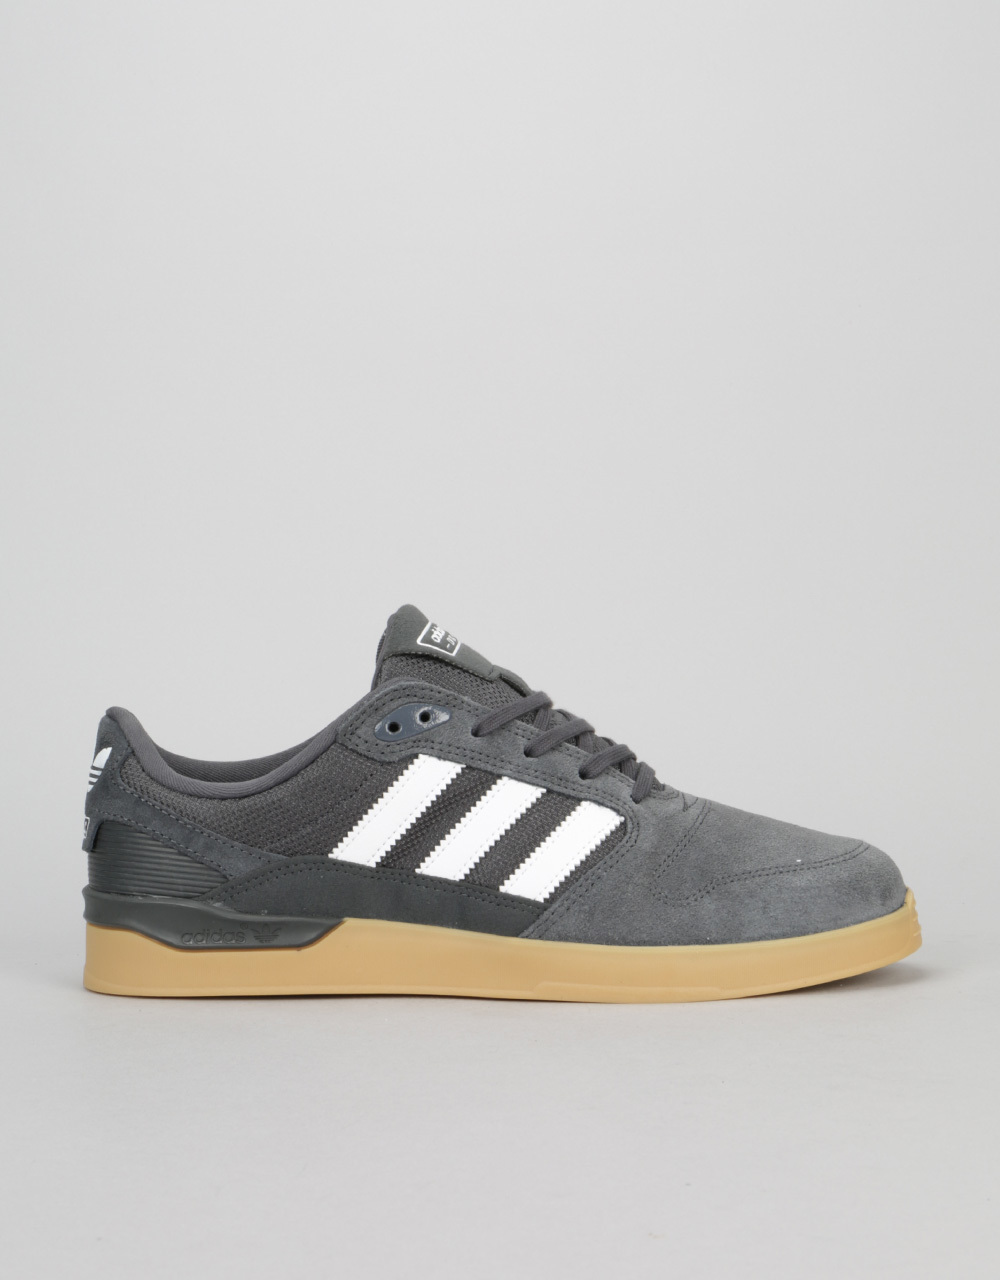 fdd49b71937 Adidas ZX Vulc Skate Shoes - Solid Grey White Gum